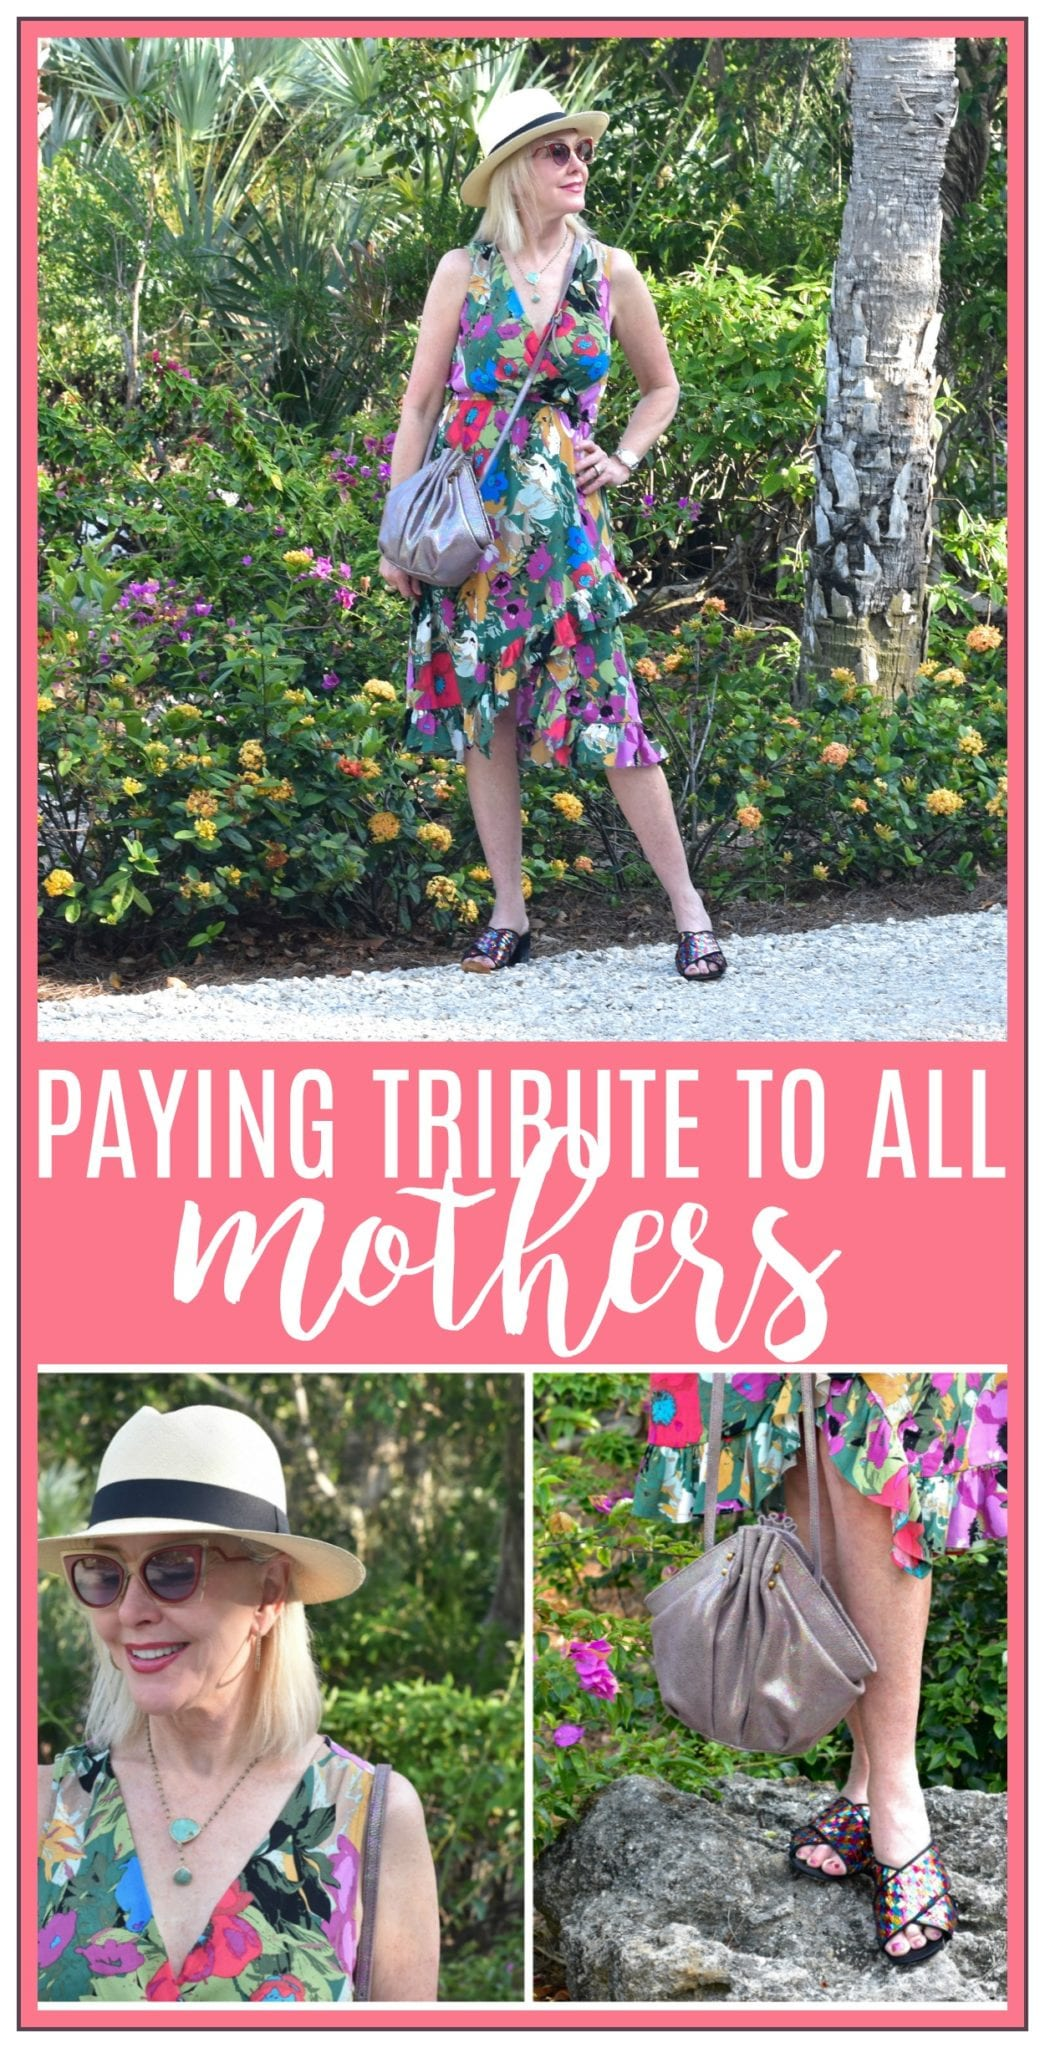 mothers day, mothers day tribute, mothers day 2018